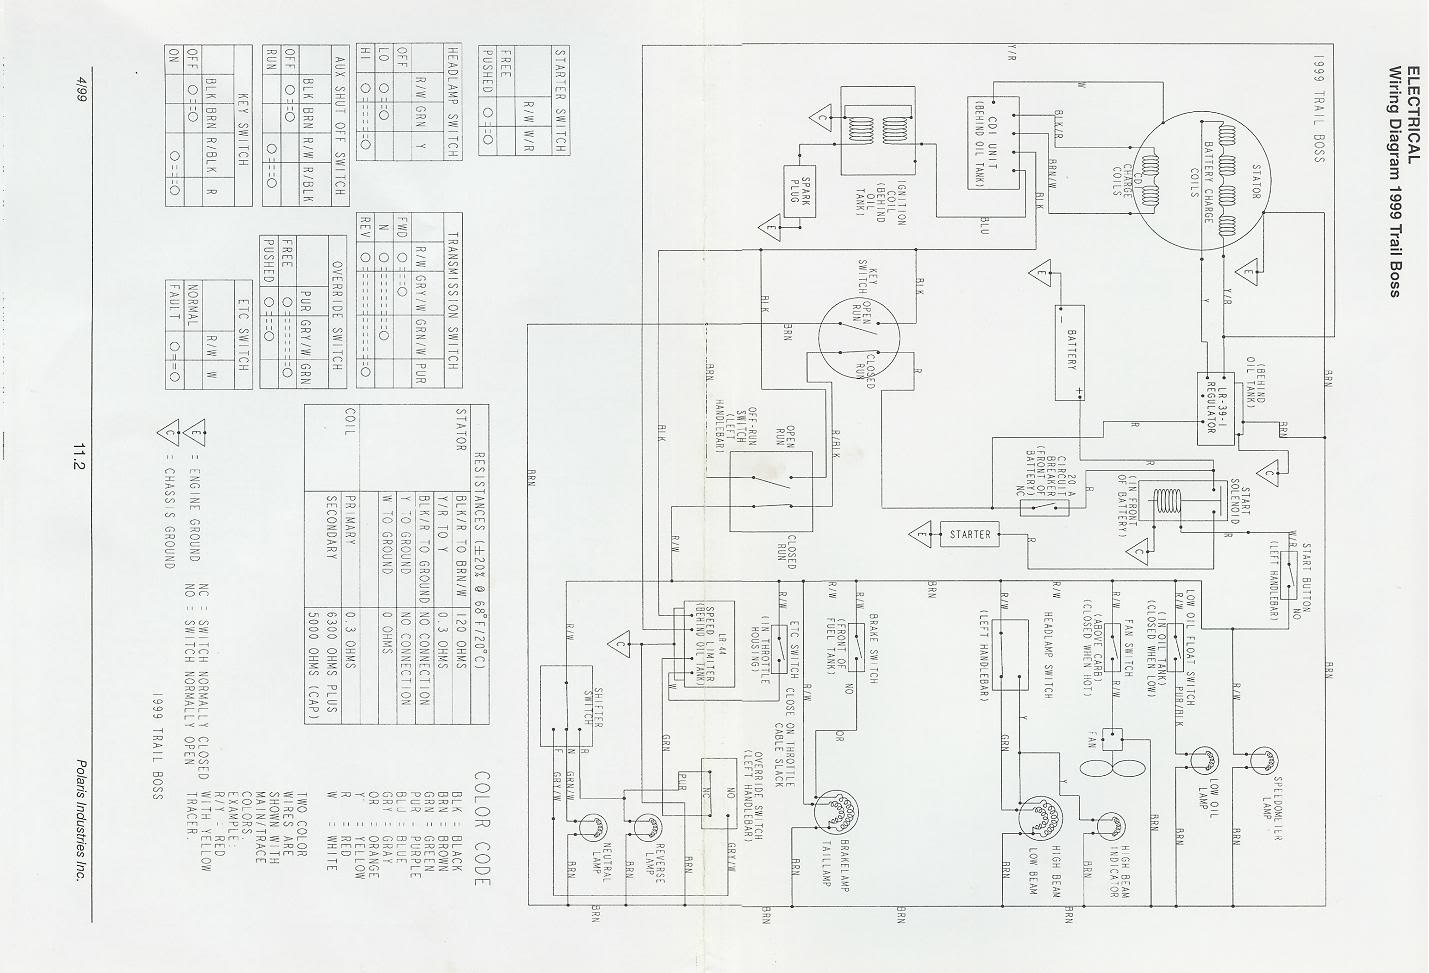 [DIAGRAM in Pictures Database] Isuzu Kb 250 Wiring Diagram